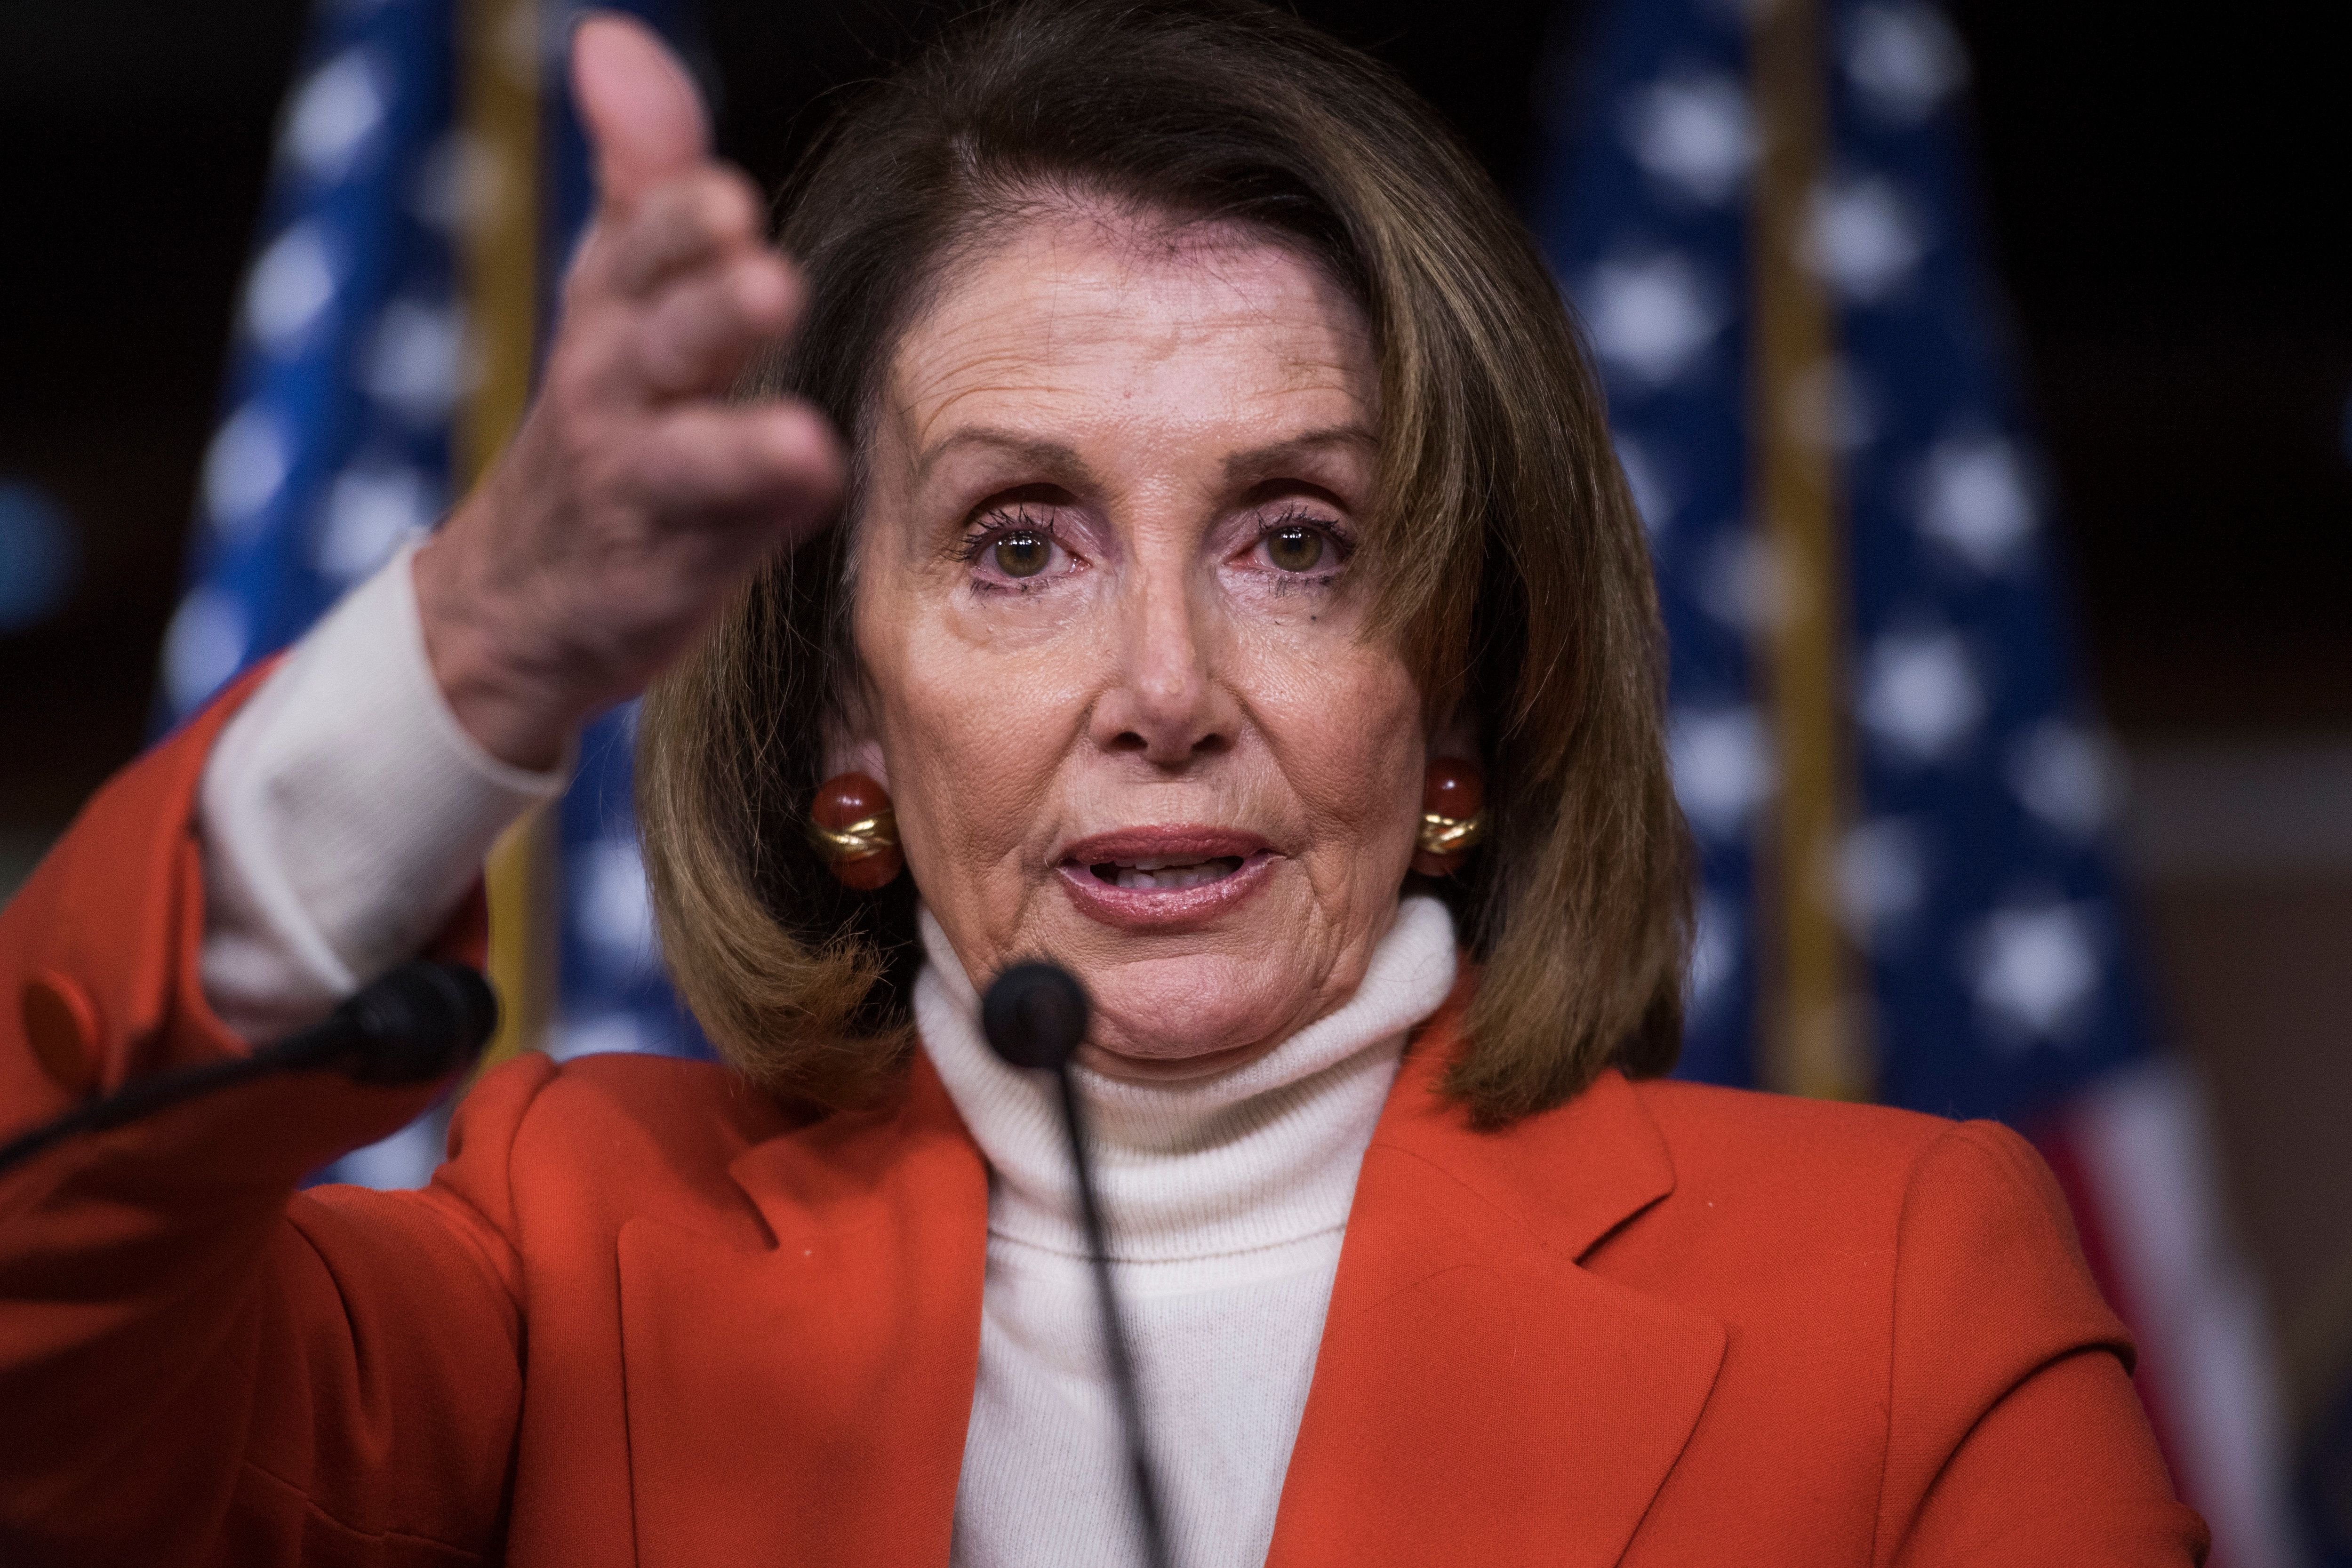 House Democrats vow to oppose Pelosi as next speaker